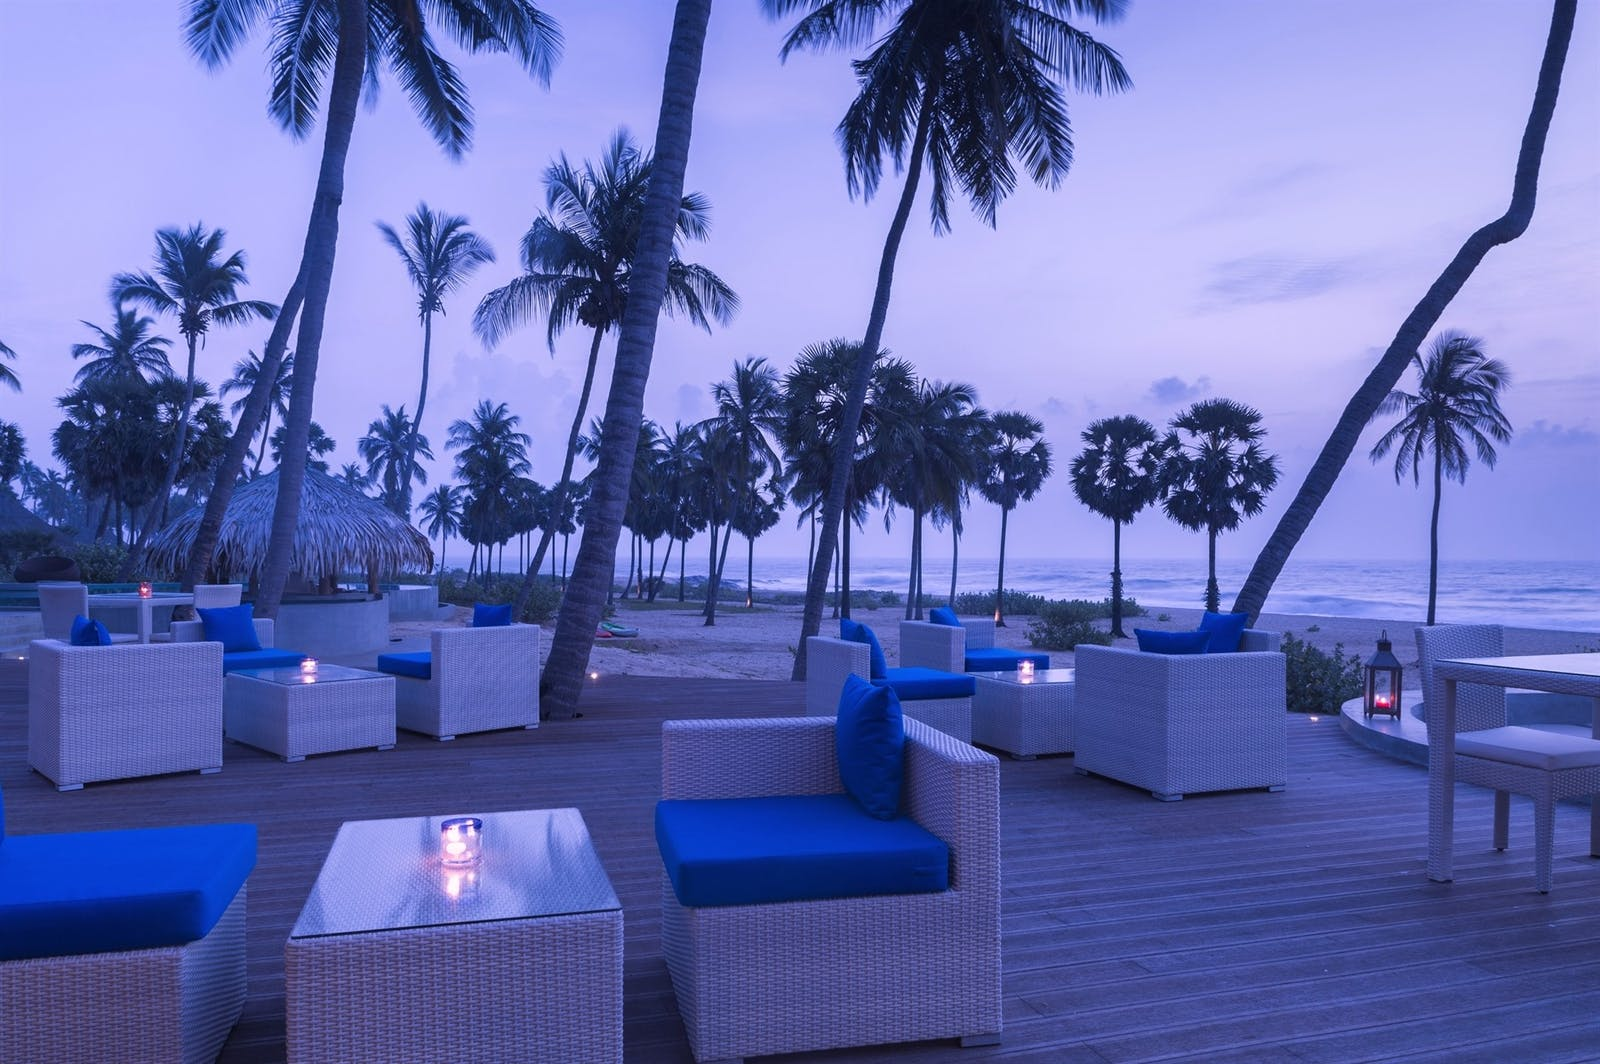 Evening Outdoor Dining, Jetwing Surf, East Coast Beaches, Sri Lanka